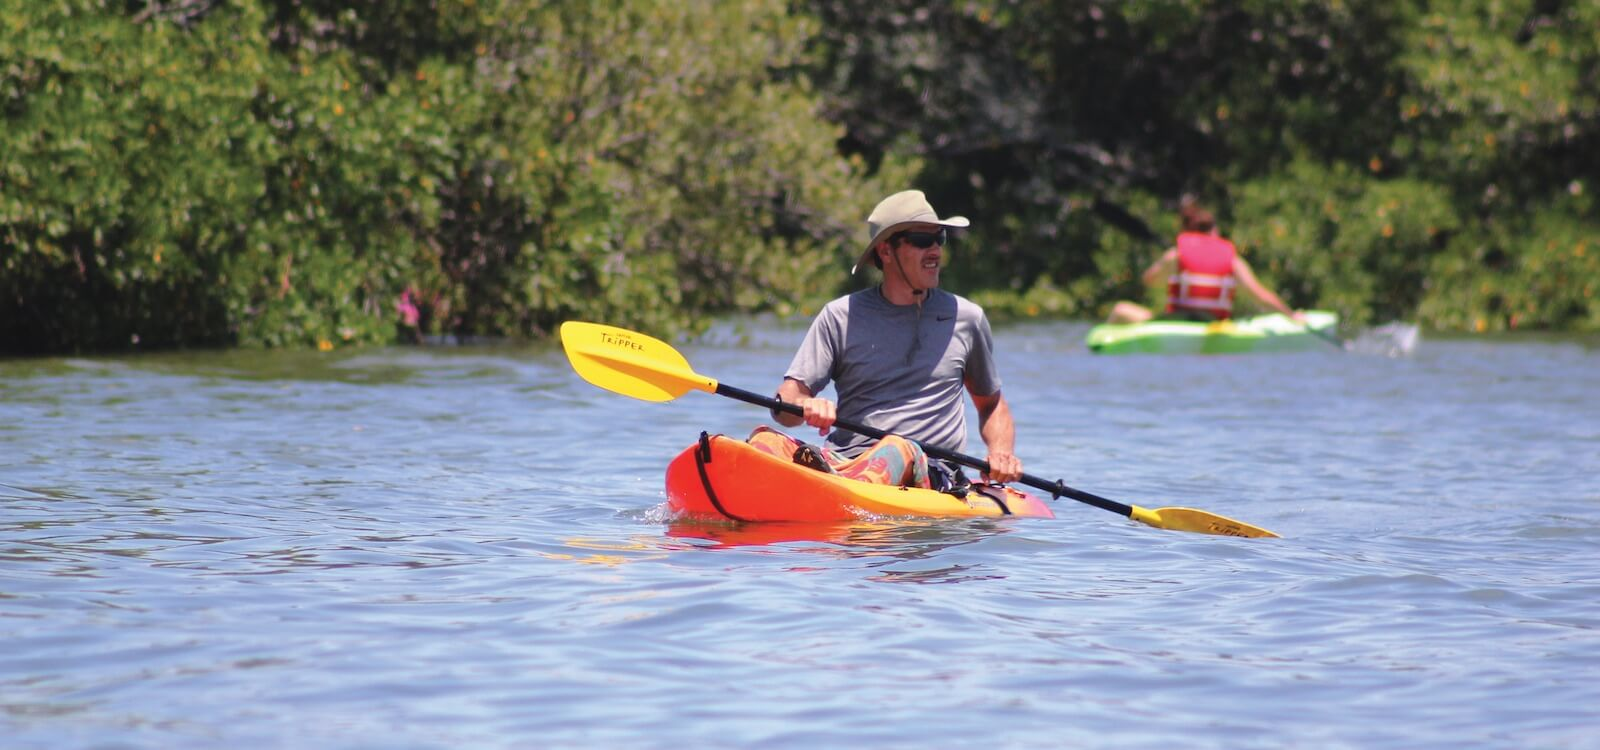 MustDo.com | Sarasota, Florida guided kayak tour.